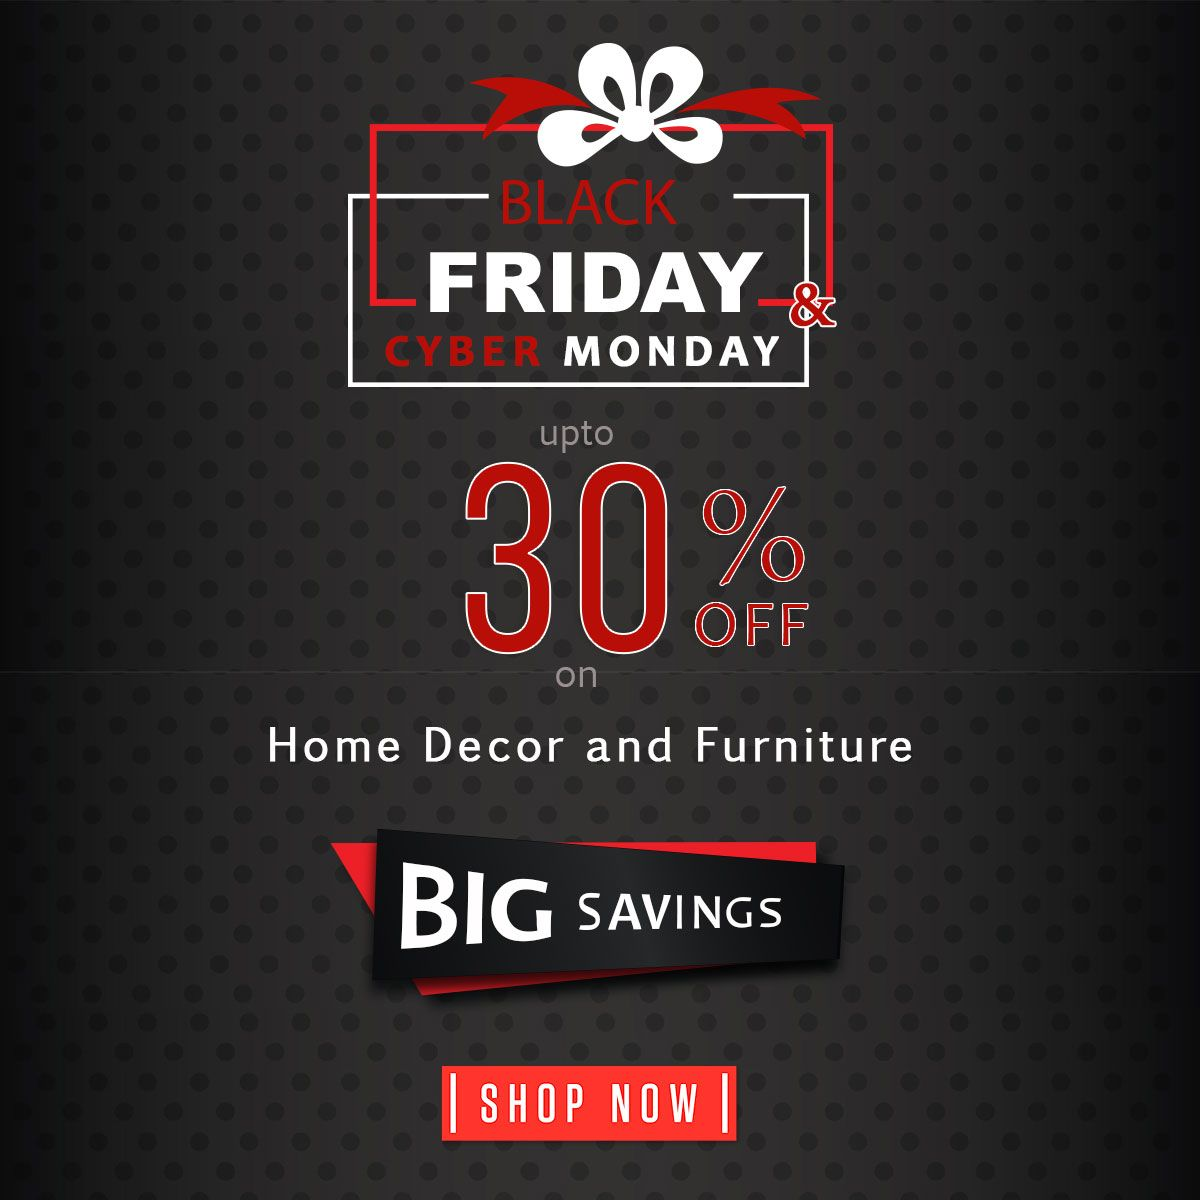 Black Friday Cyber Monday Home Decor And Furniture Sale Shop The